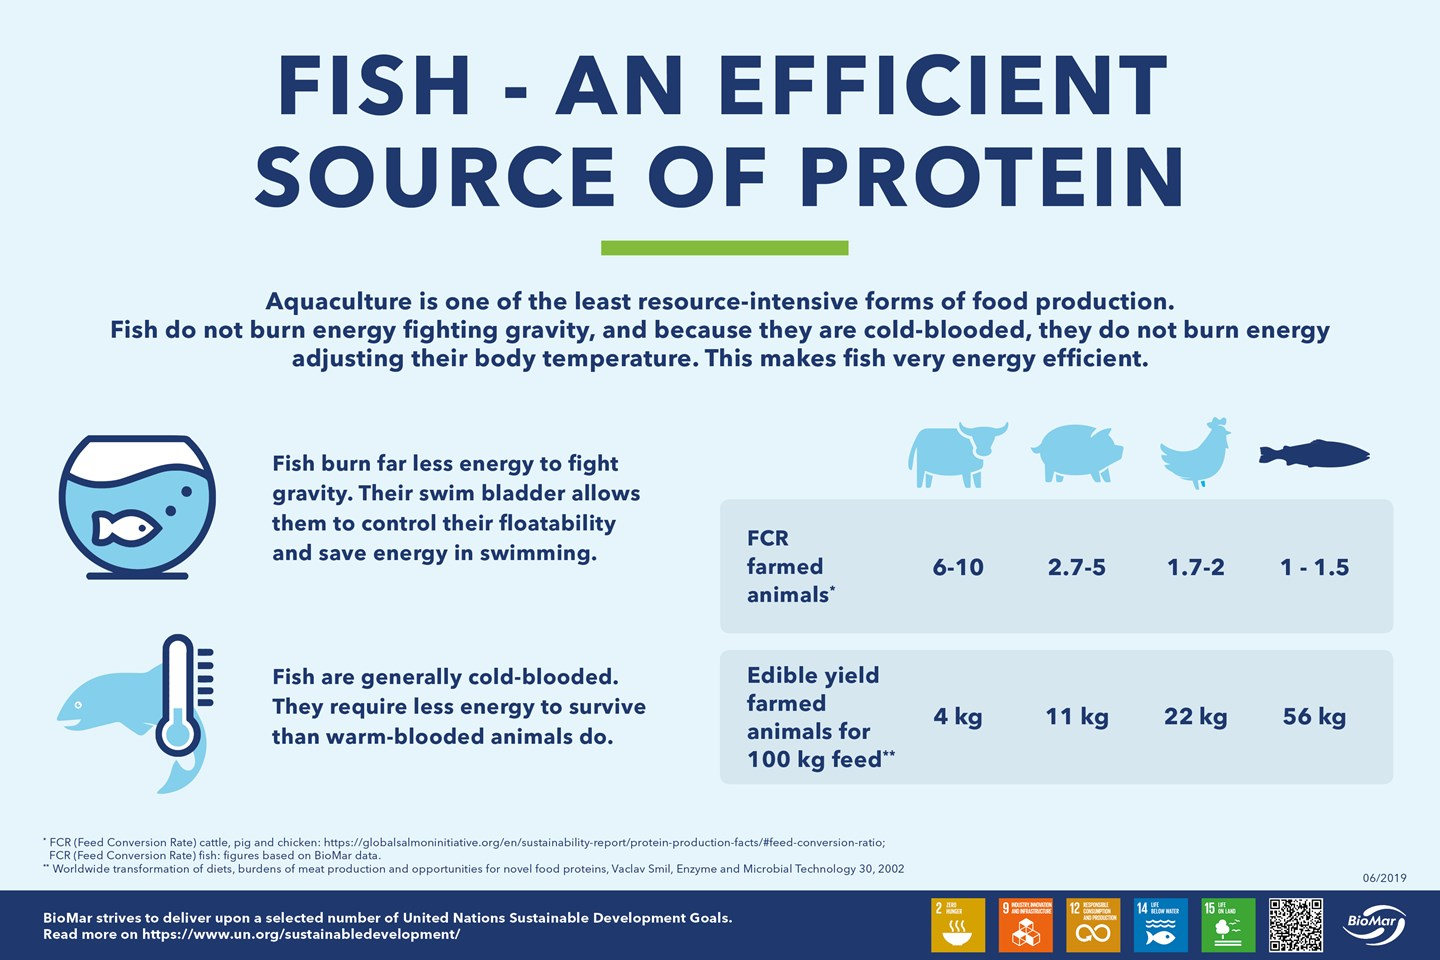 Aquaculture is one of the least resource-intensive forms of food production. Fish do not burn energy fighting gravity, and because they are cold-blooded, they do not burn energy adjusting their body temperature. This makes fish very energy efficient.